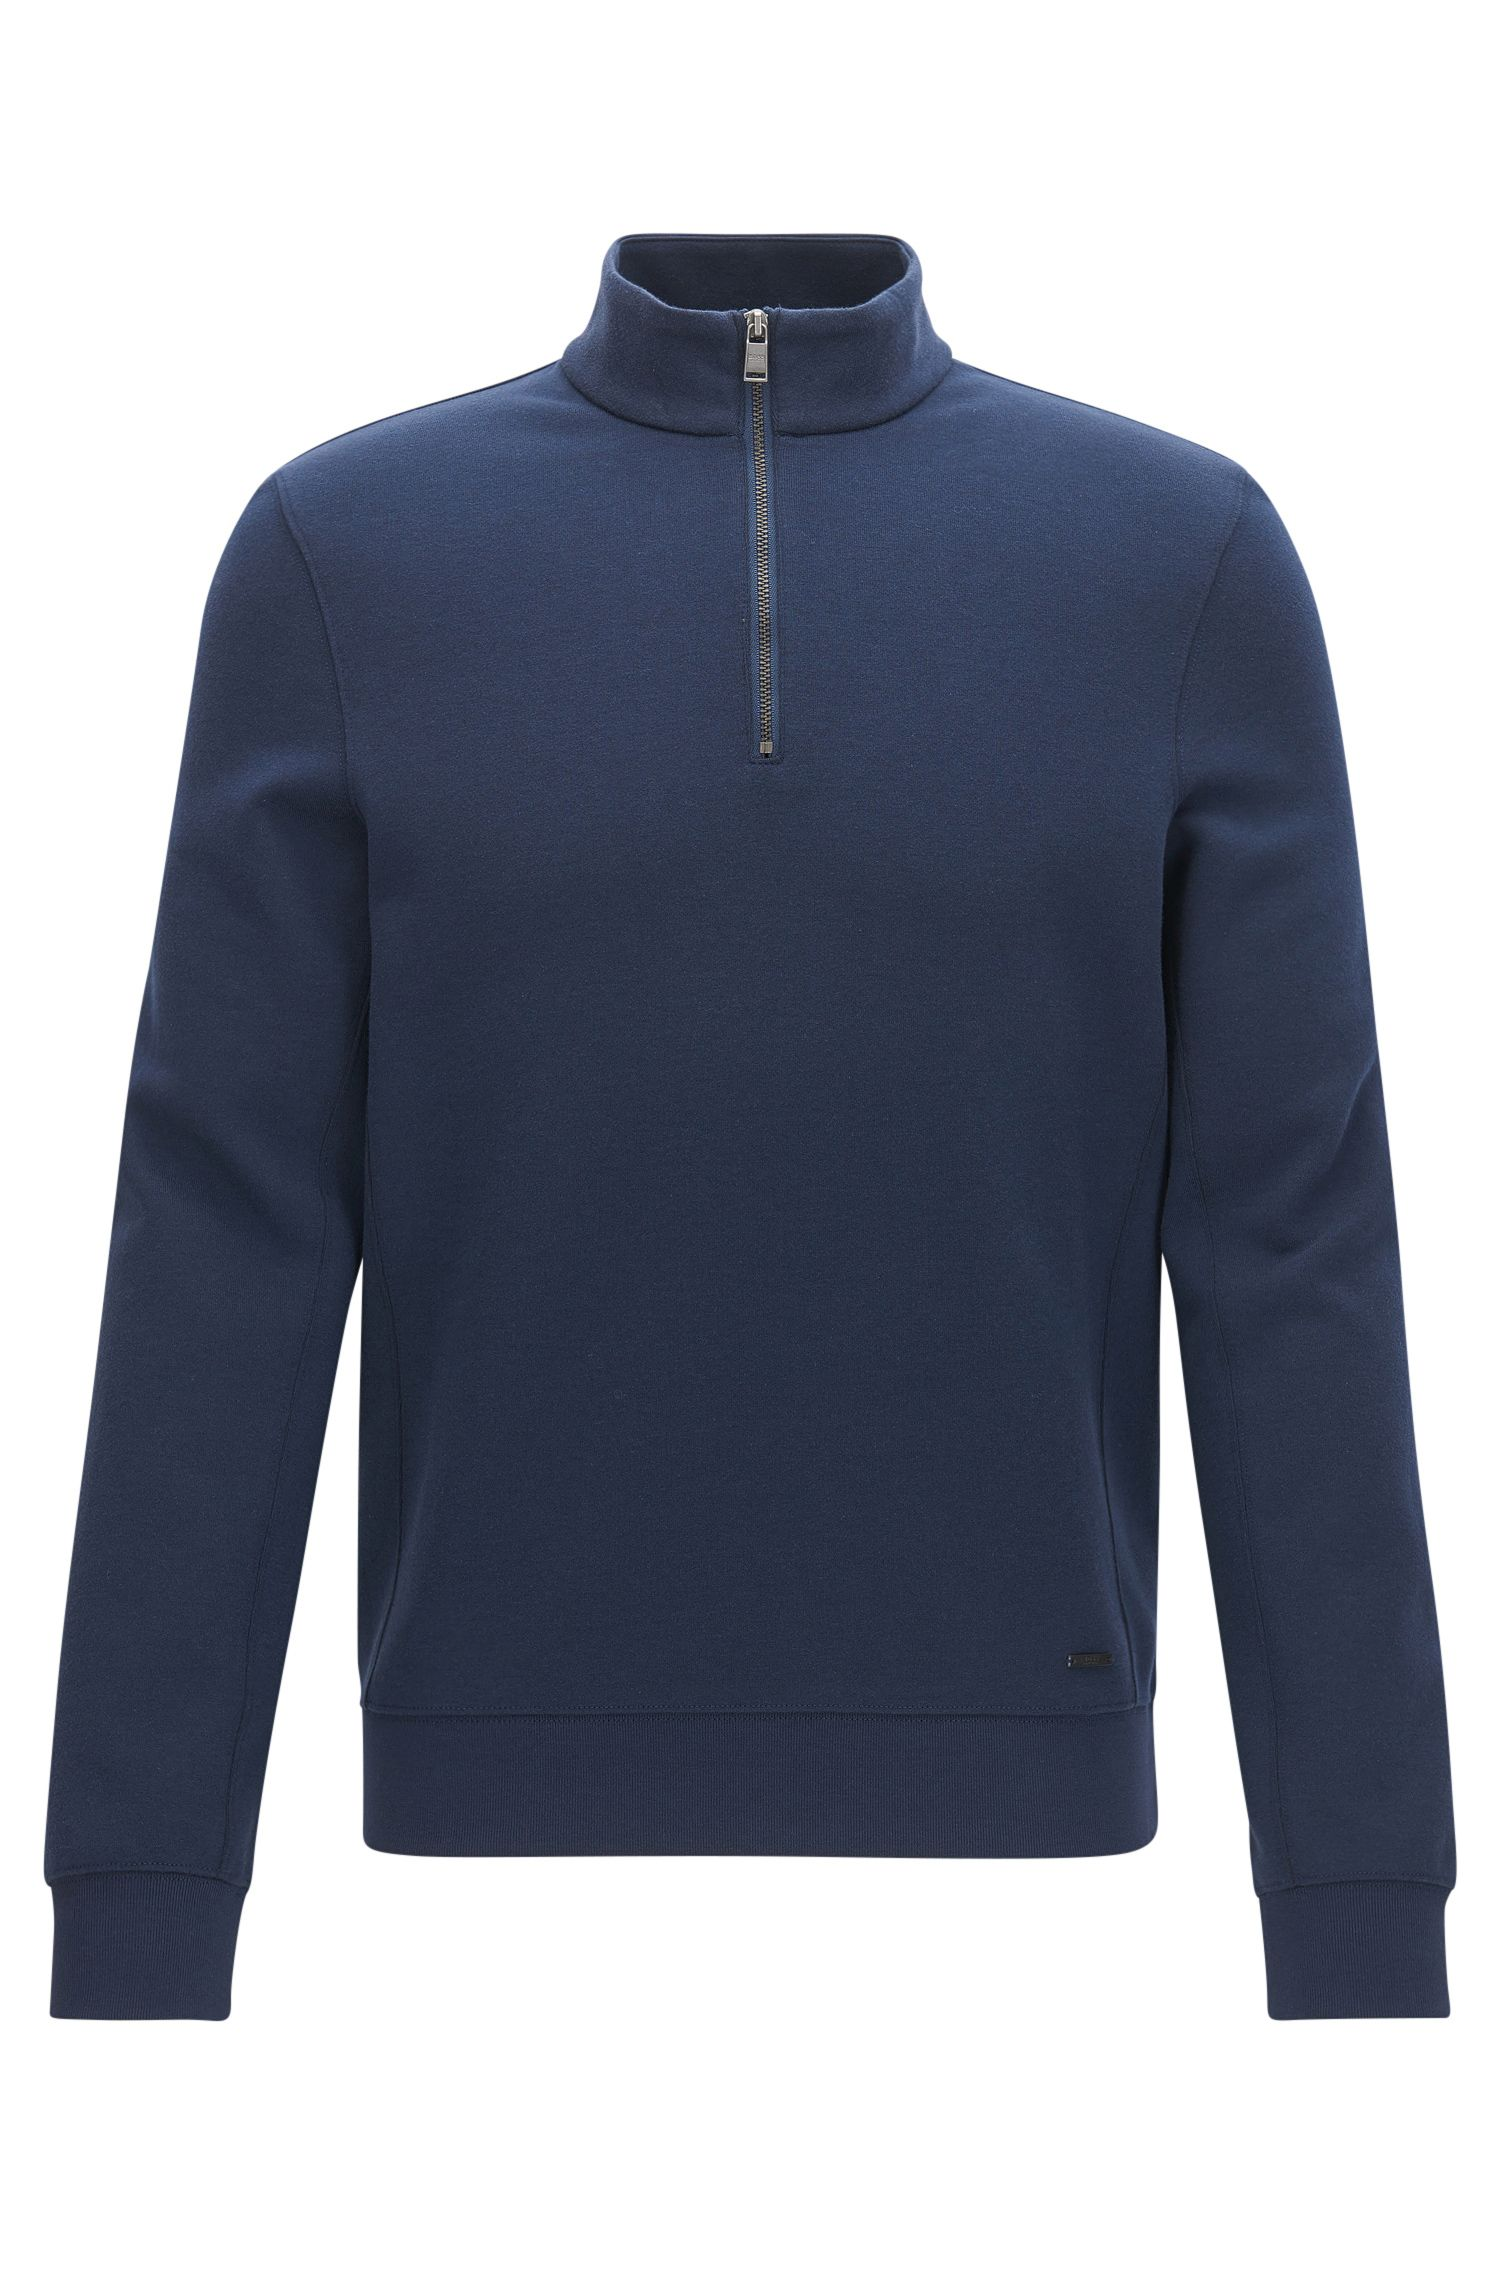 Sweat Slim Fit à col zippé en coton mélangé